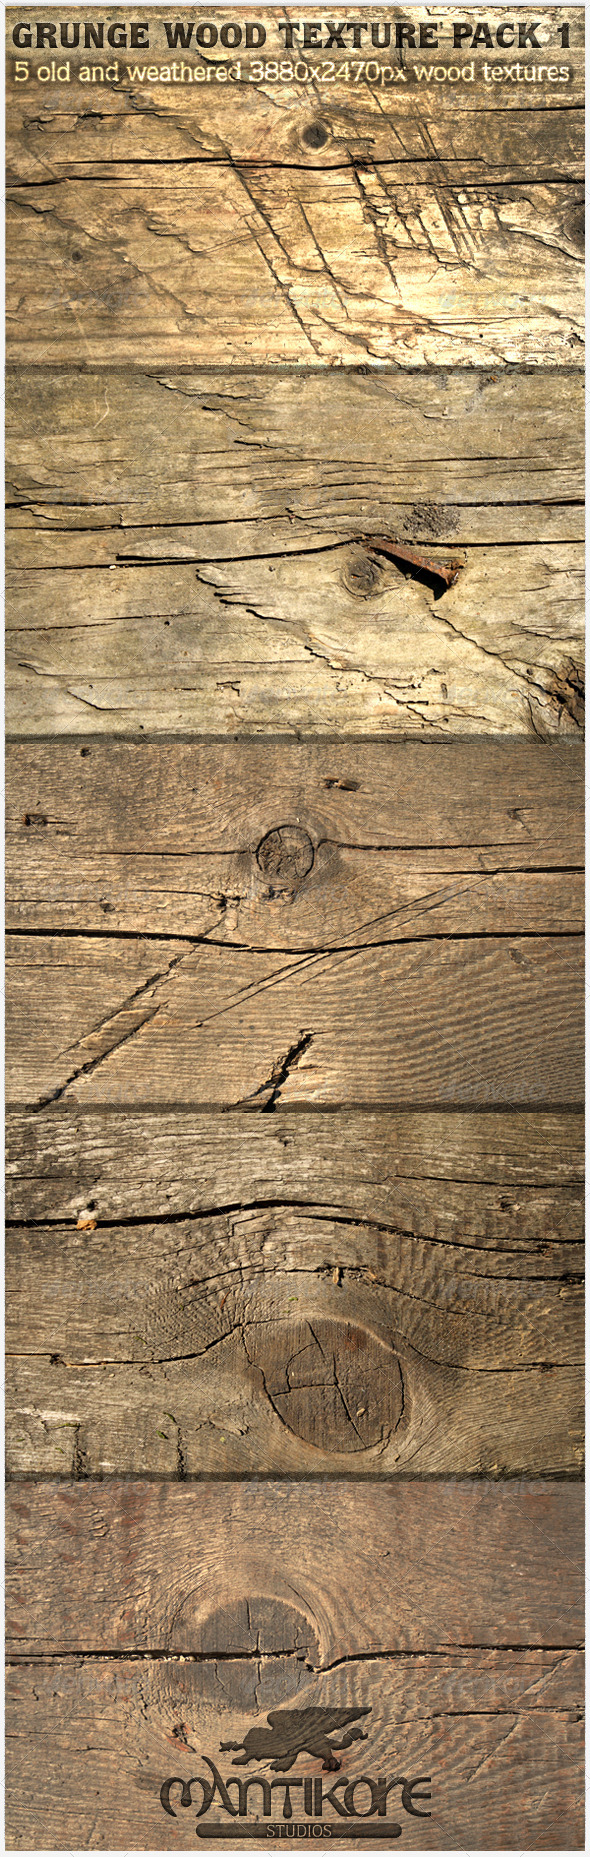 GraphicRiver Grunge Wood Texture Pack 1 5474798